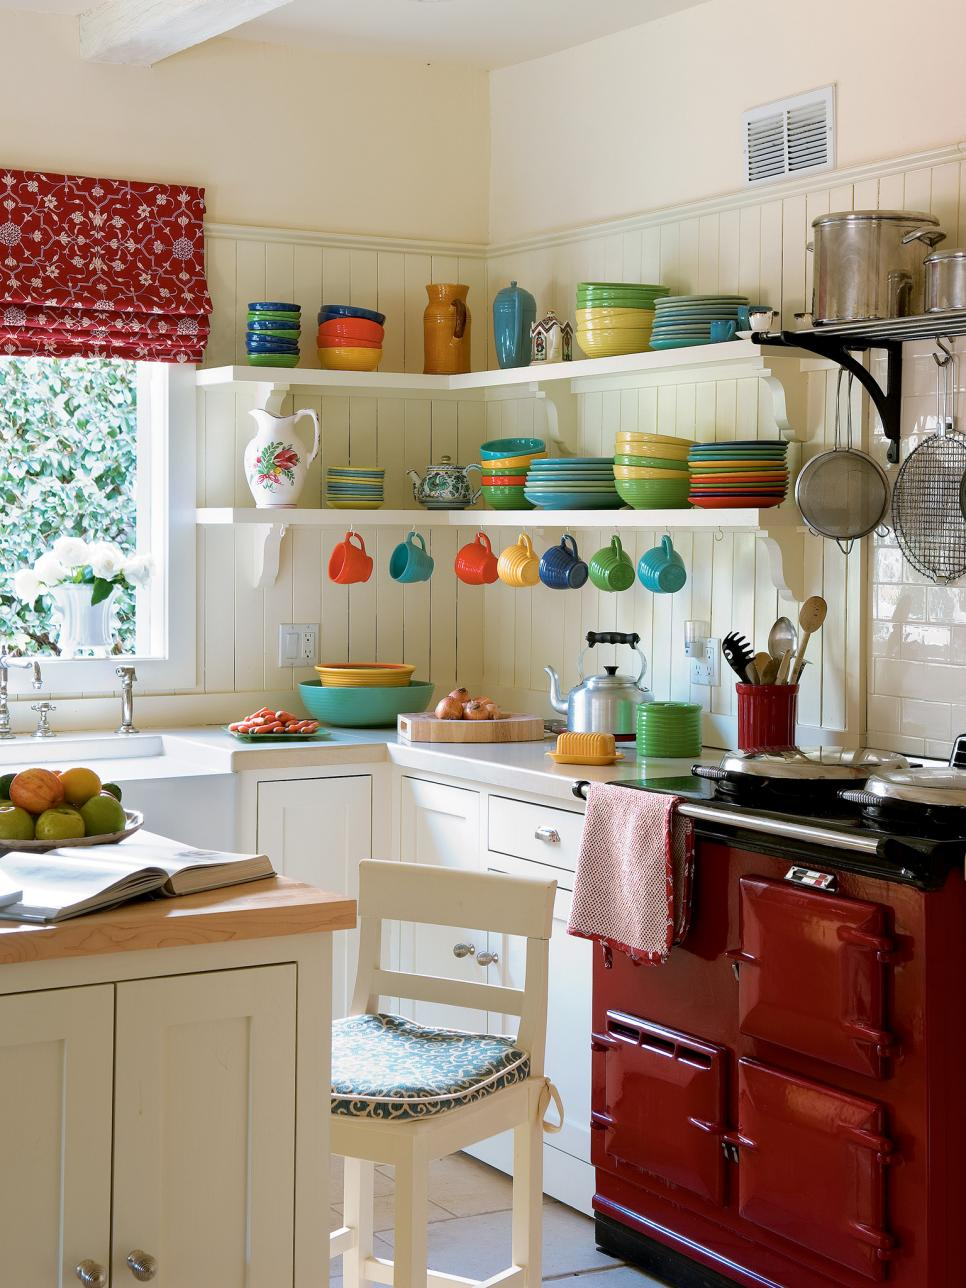 The Best Small Kitchen Design Photos For A Small Kitchen